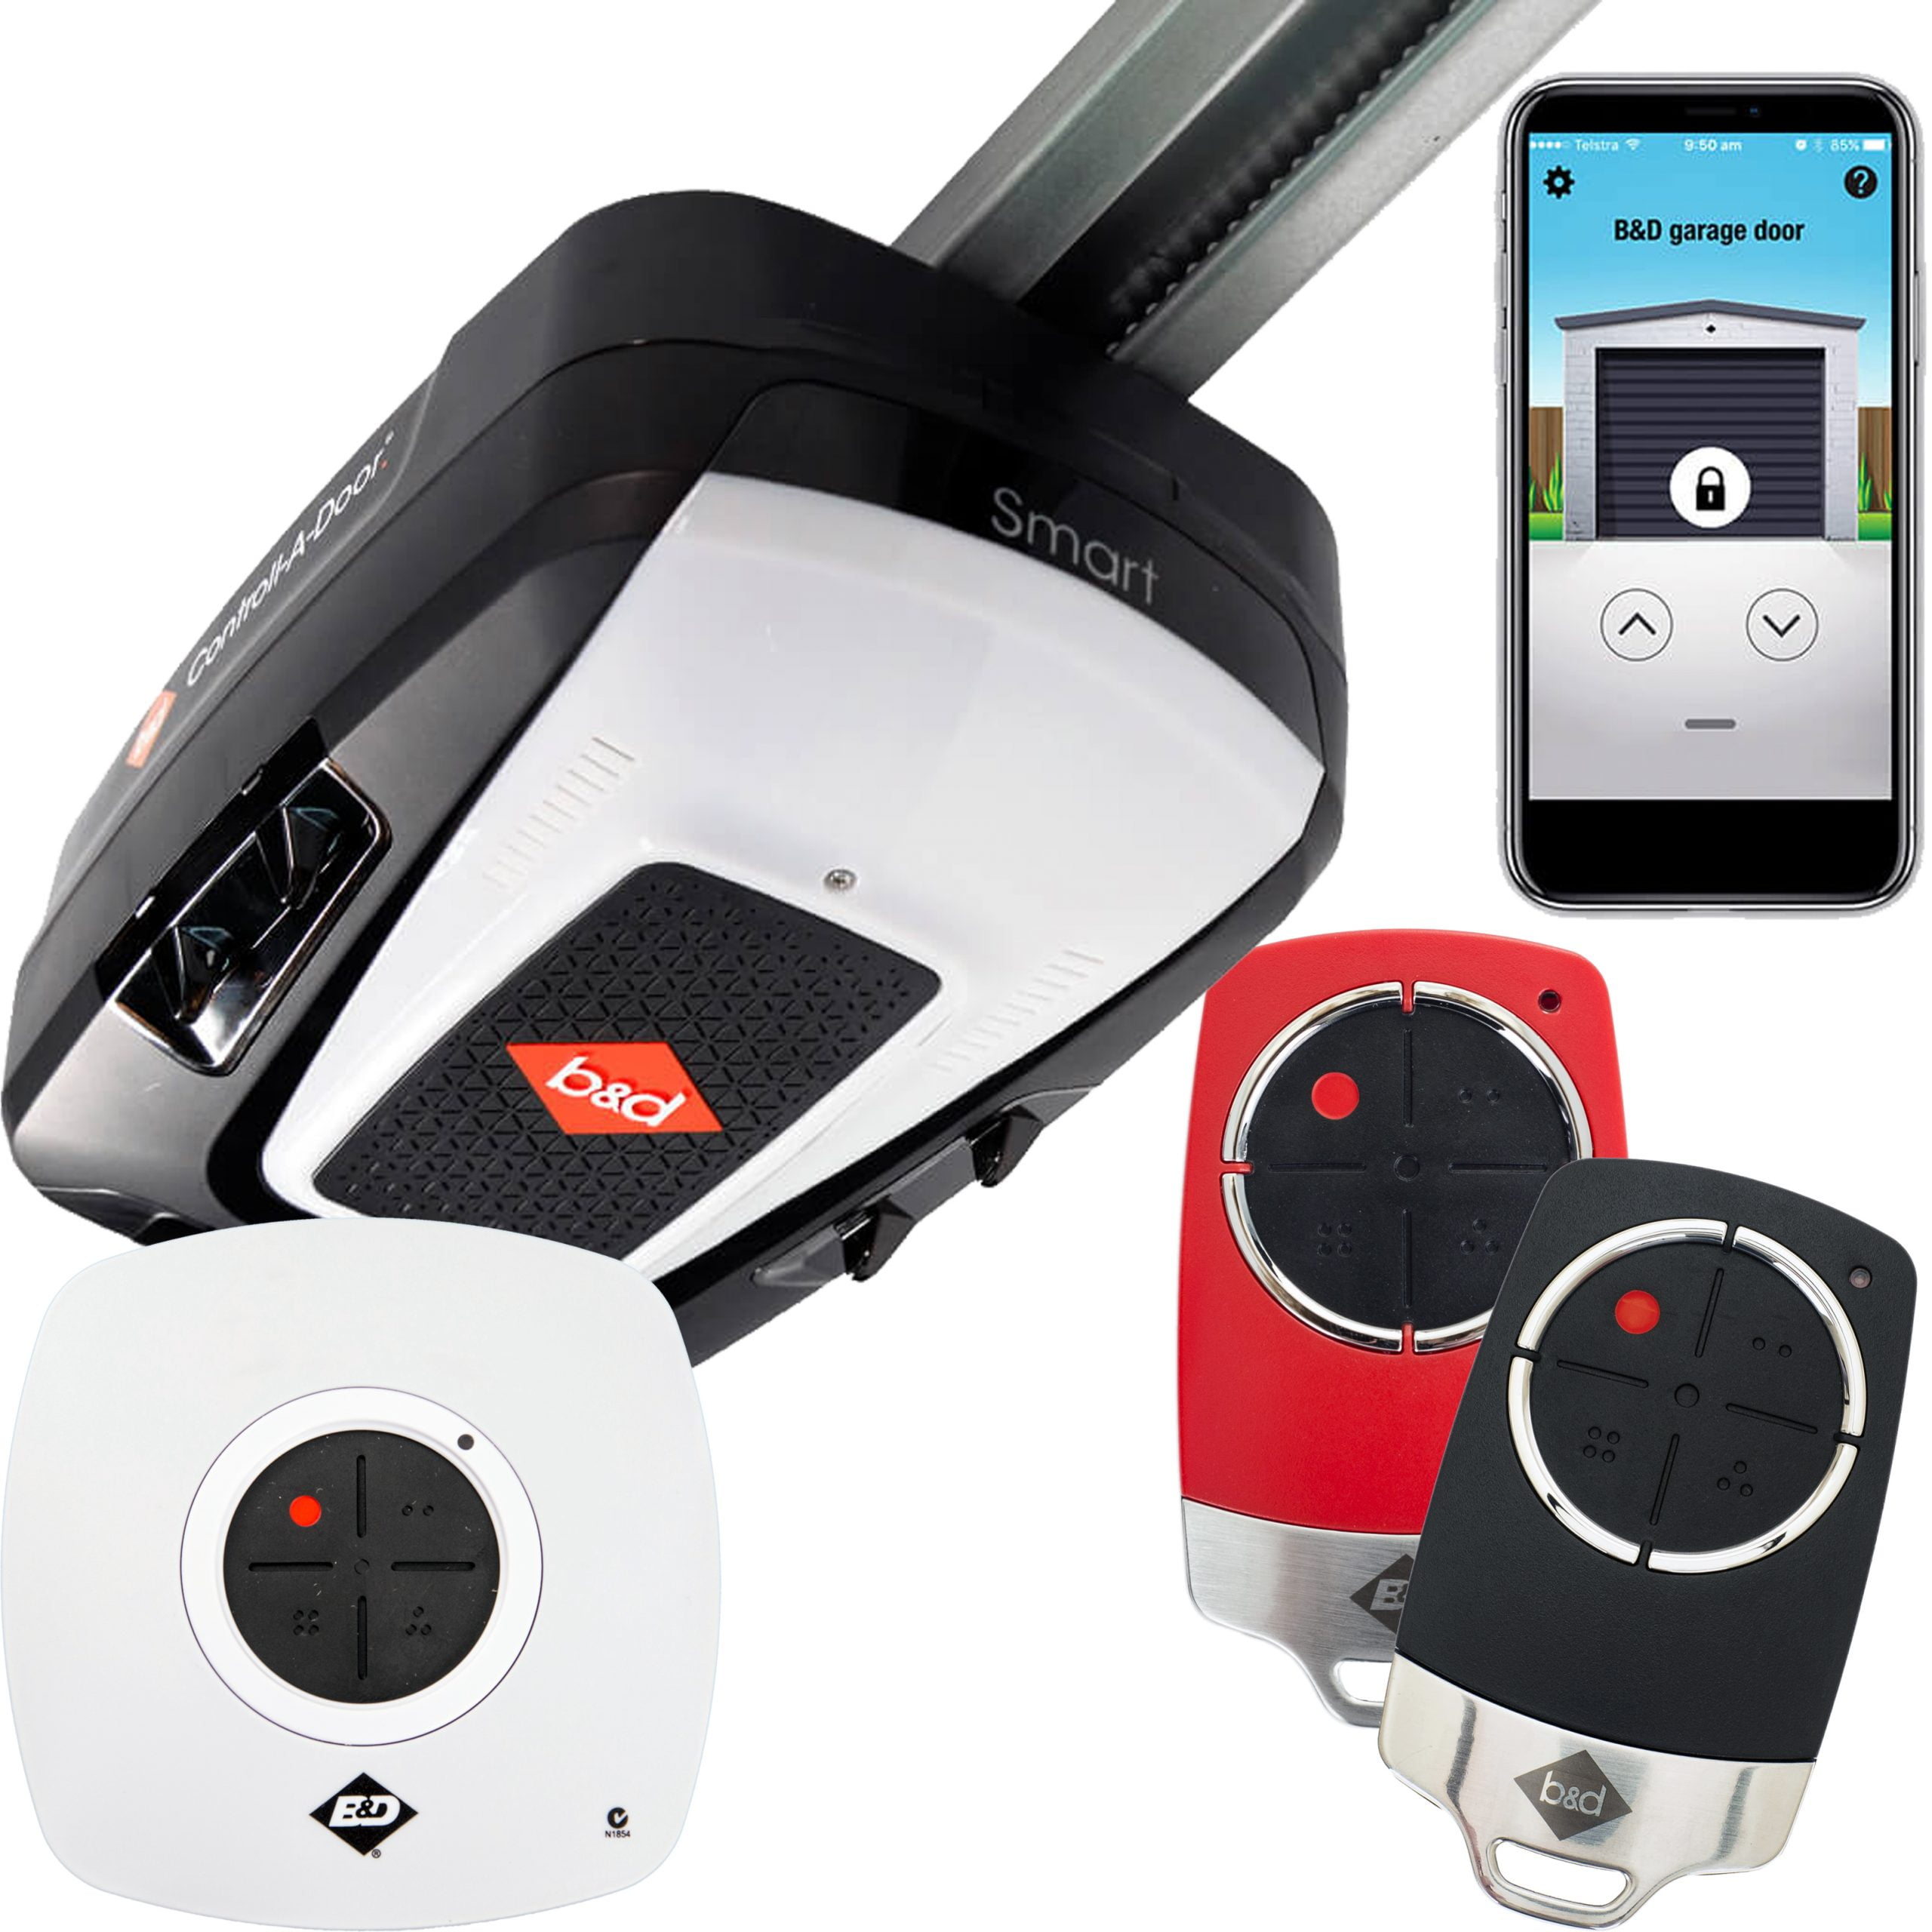 B Amp D Smart Garage Door Opener Garage Door Motor National